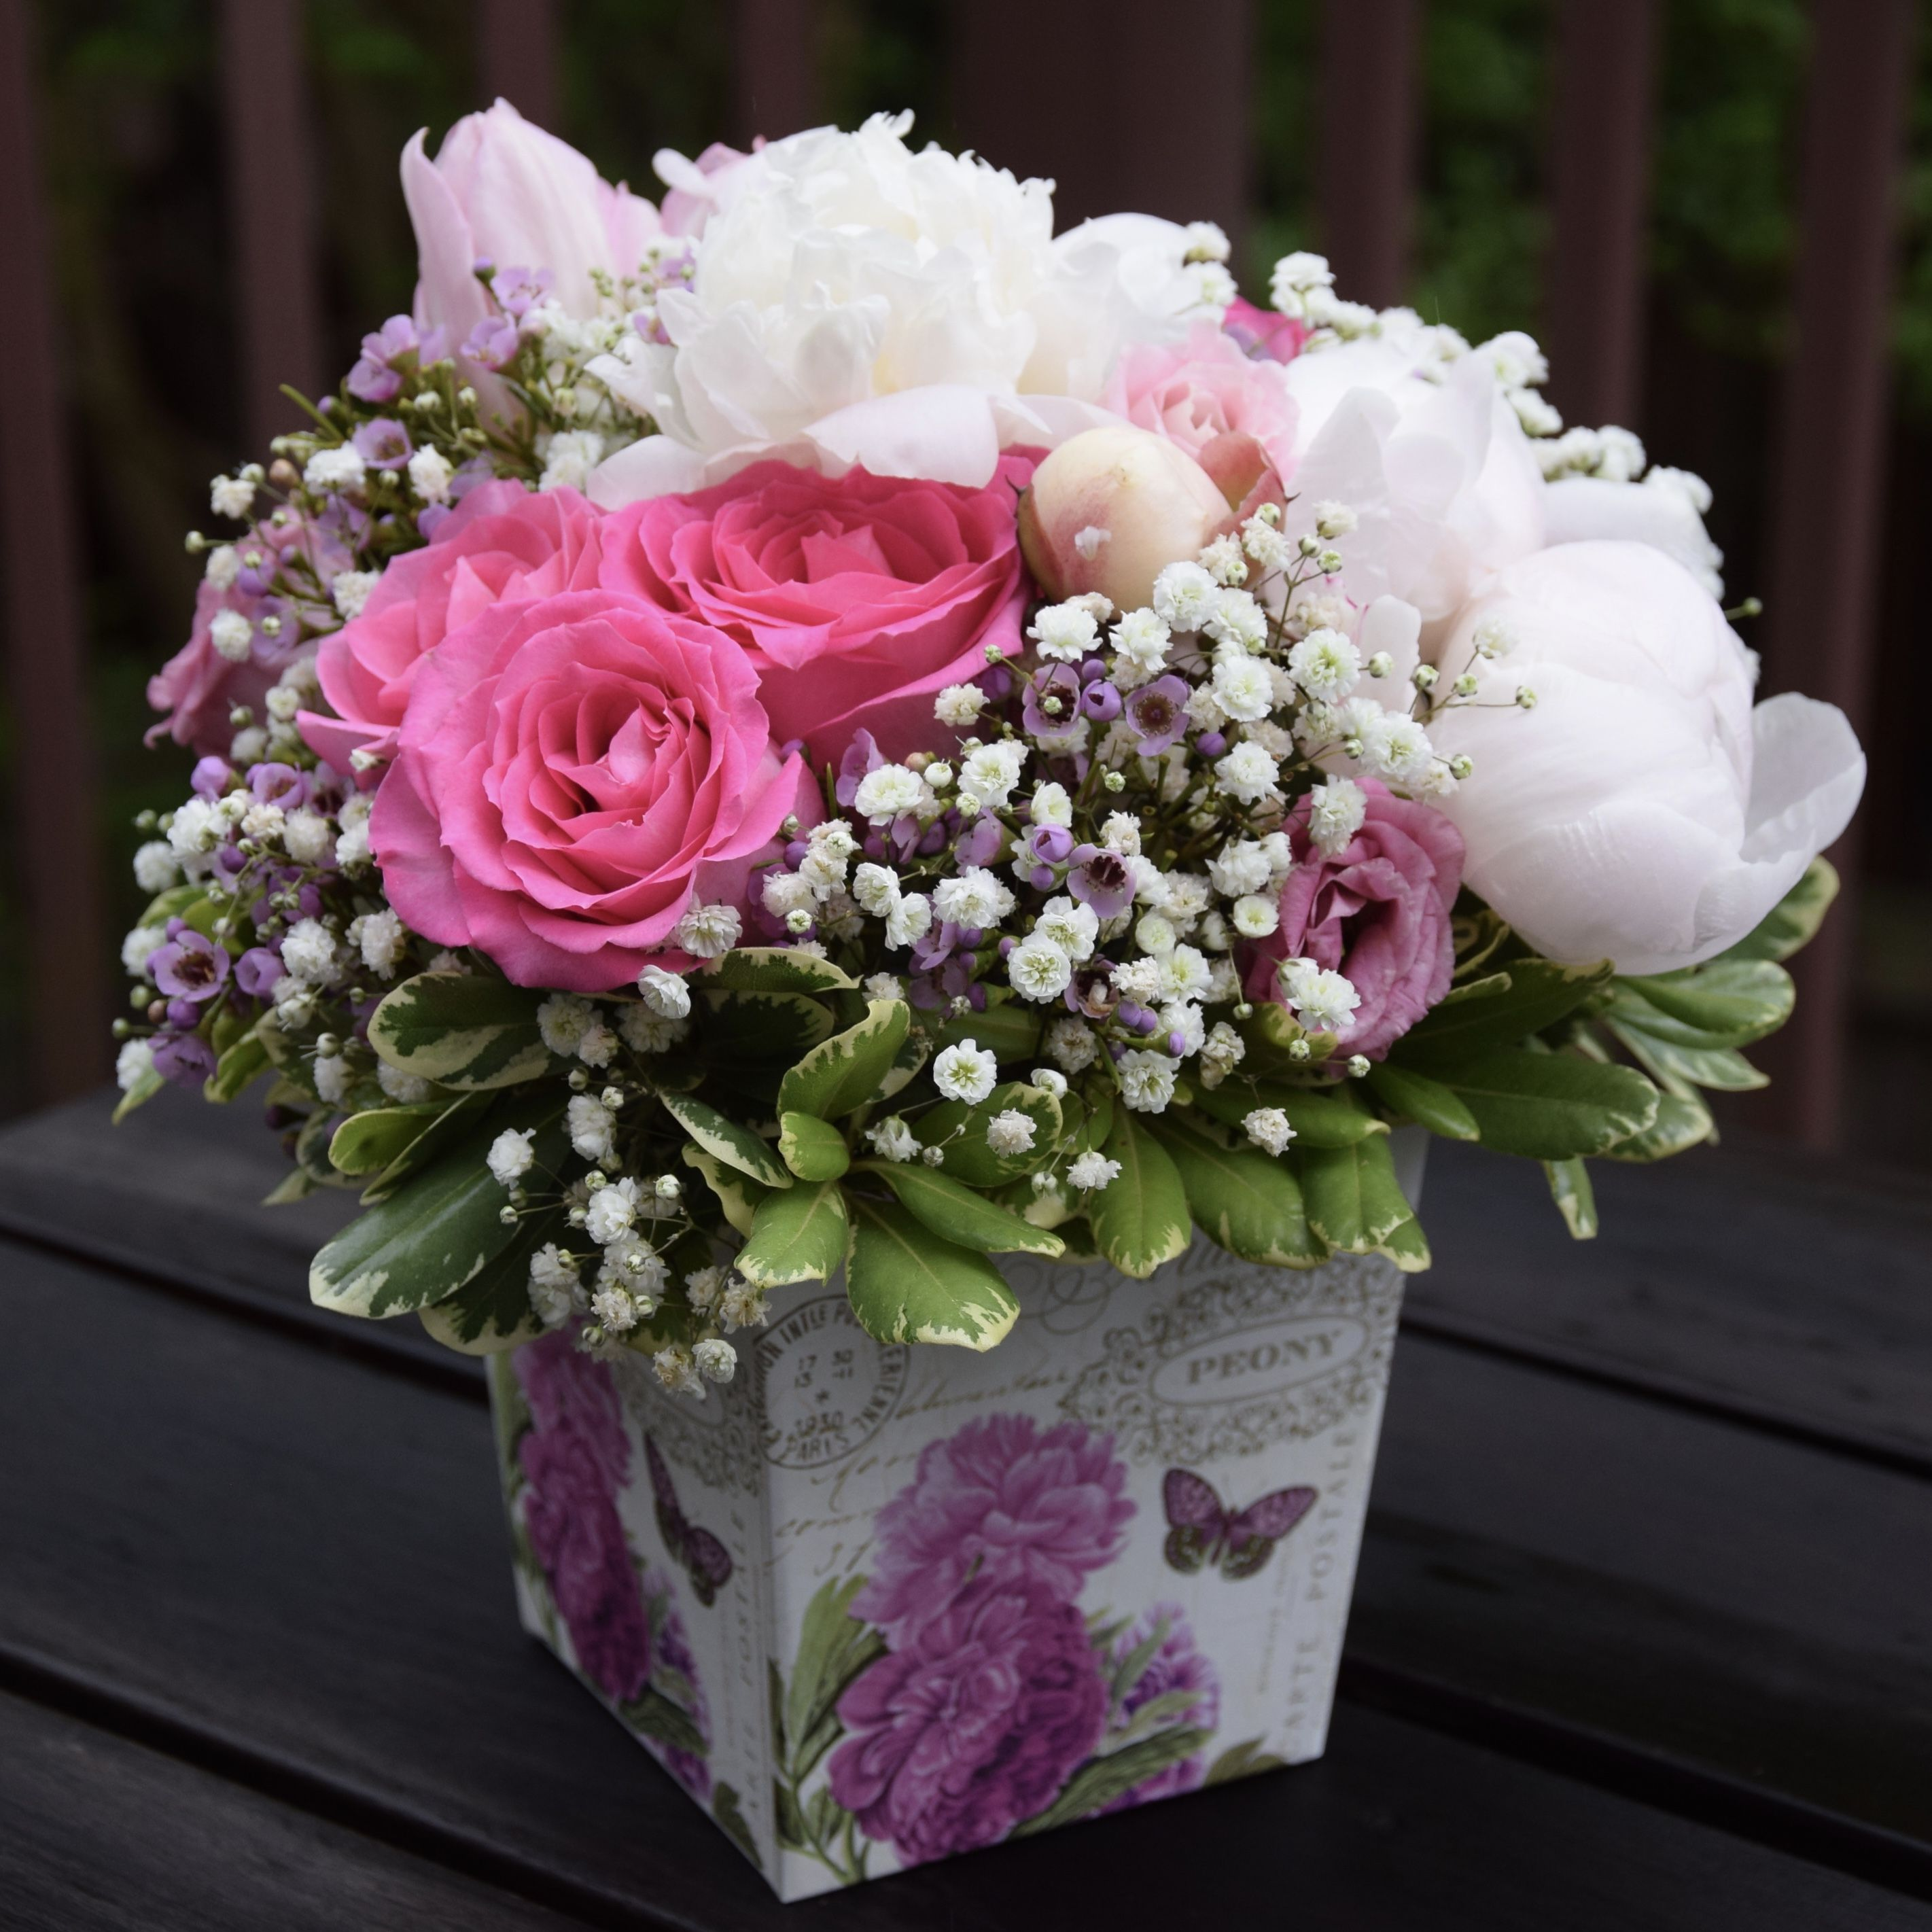 Pretty Flower Box For Mother S Day Peonies Roses Lisianthus Baby Breath And Tulips Floral Arrangements Flower Arrangements Fresh Flowers Arrangements